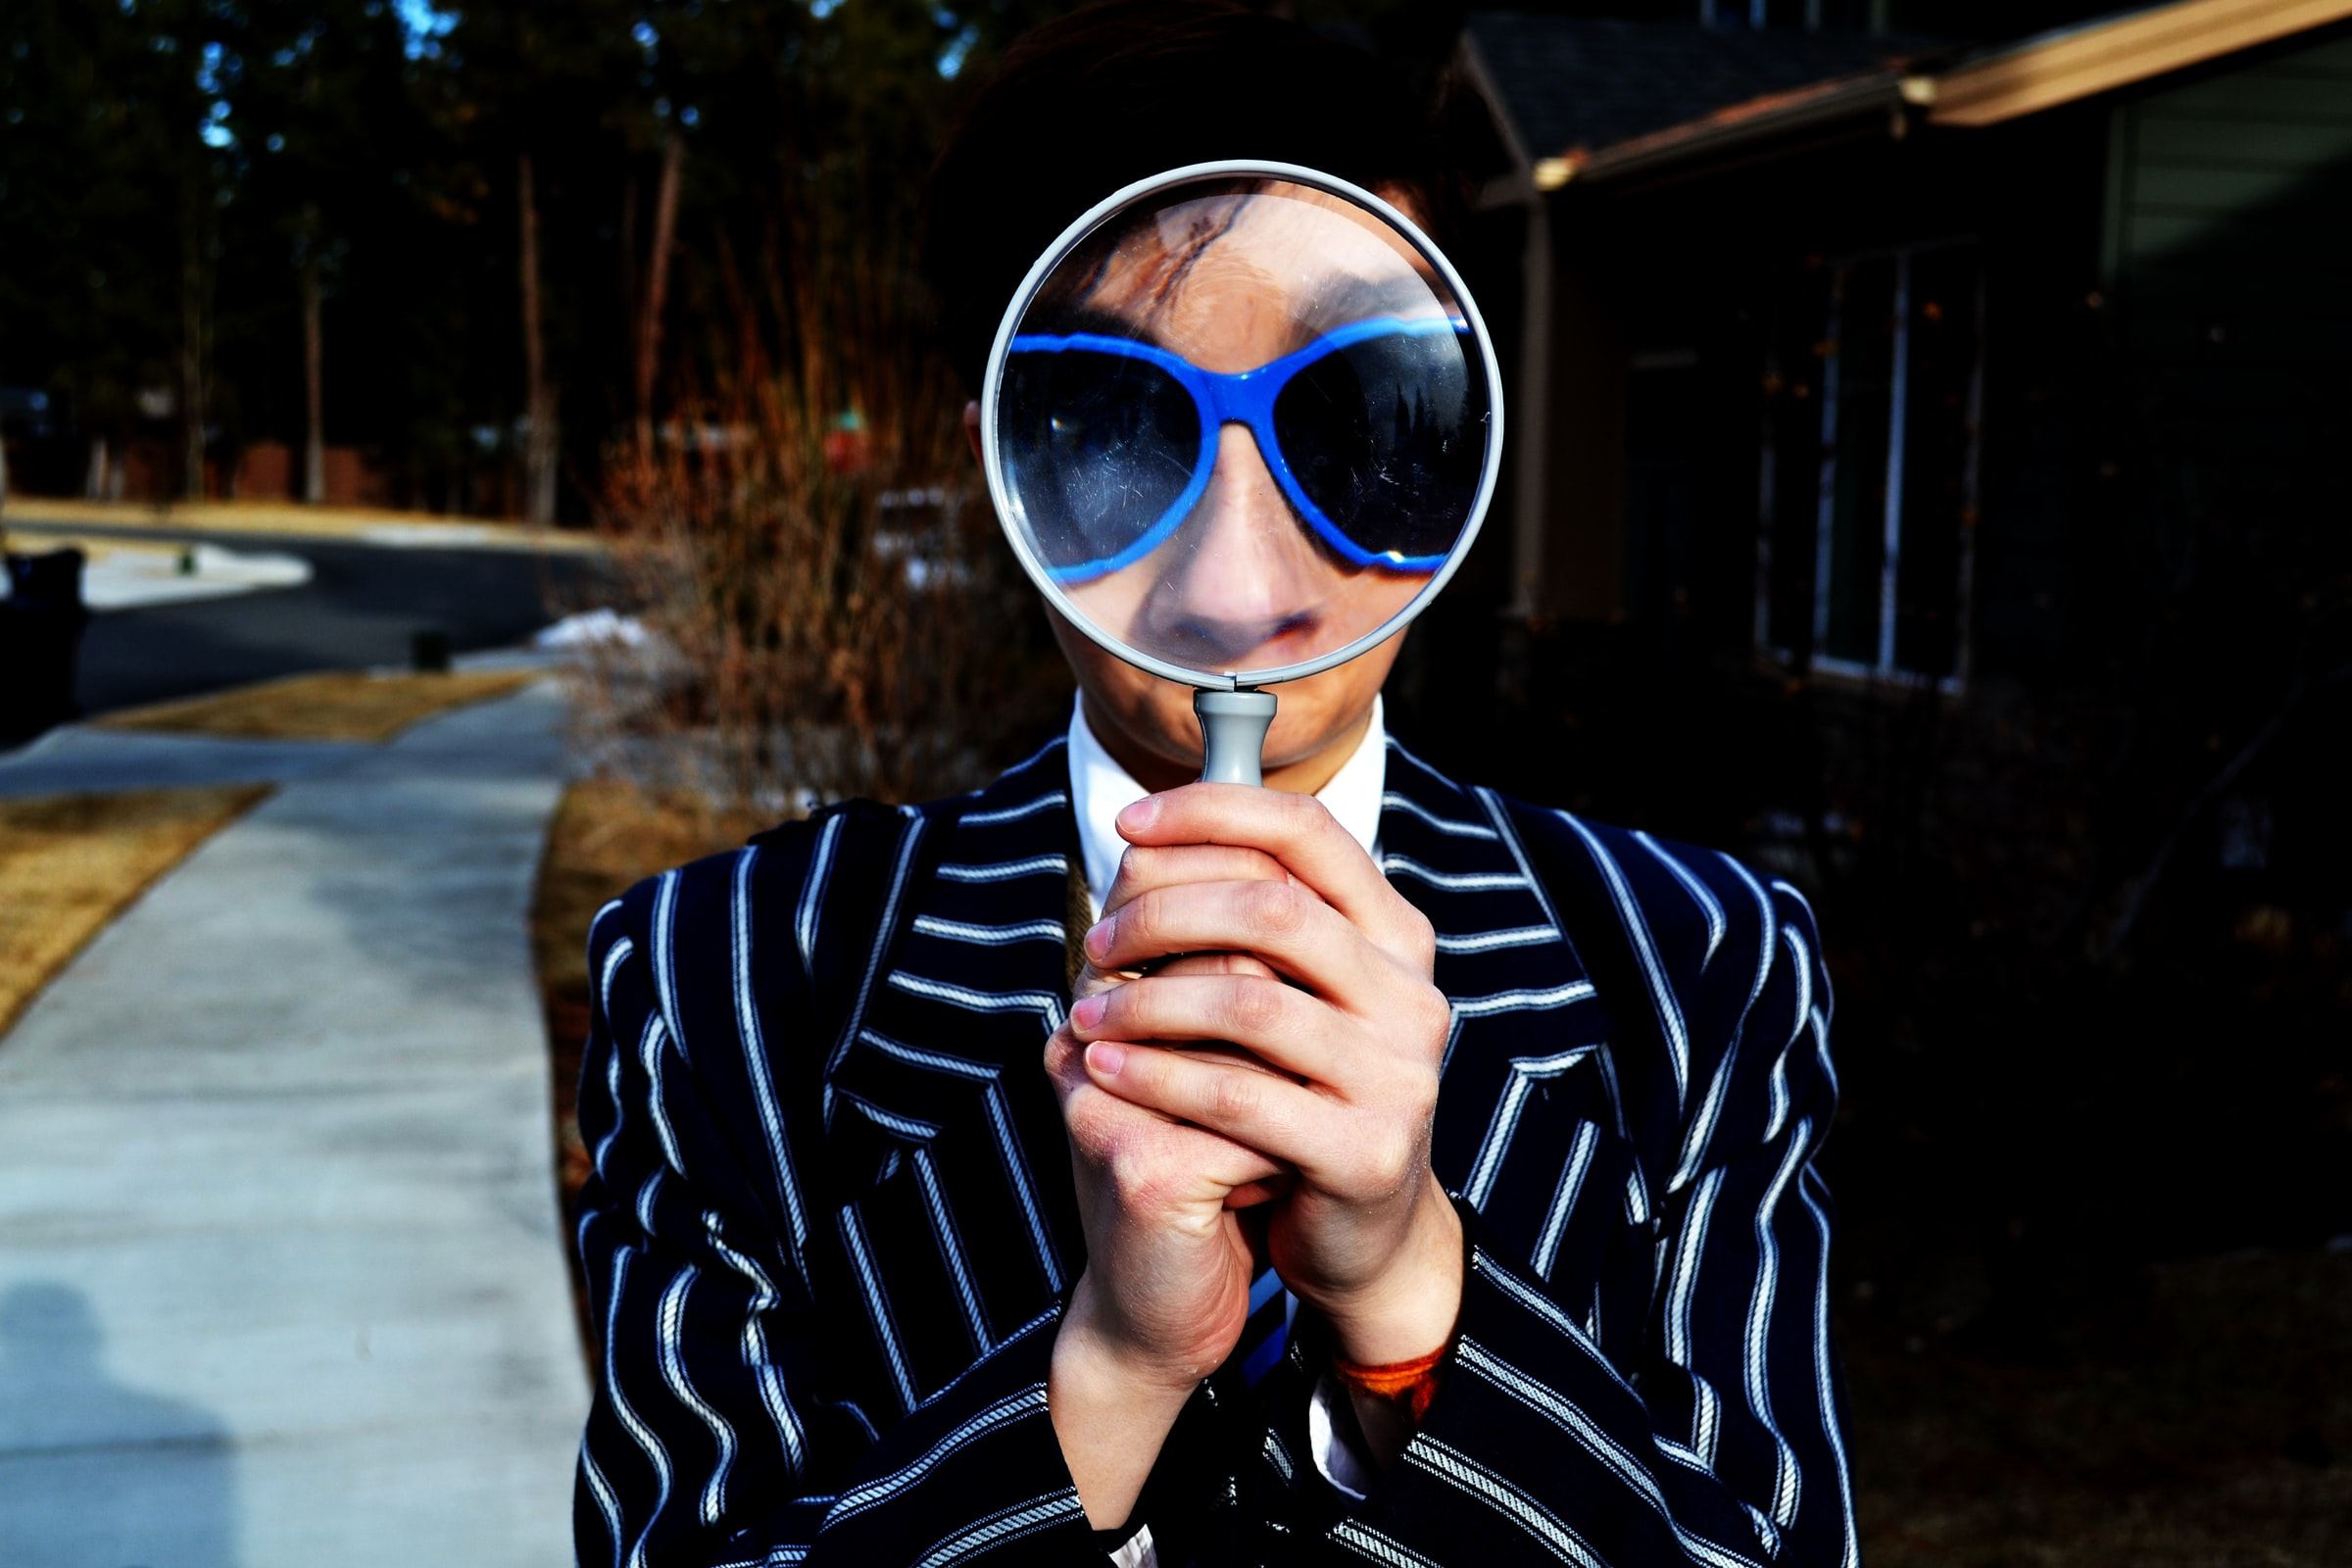 A person holds up a magnifying glass in front of their face.